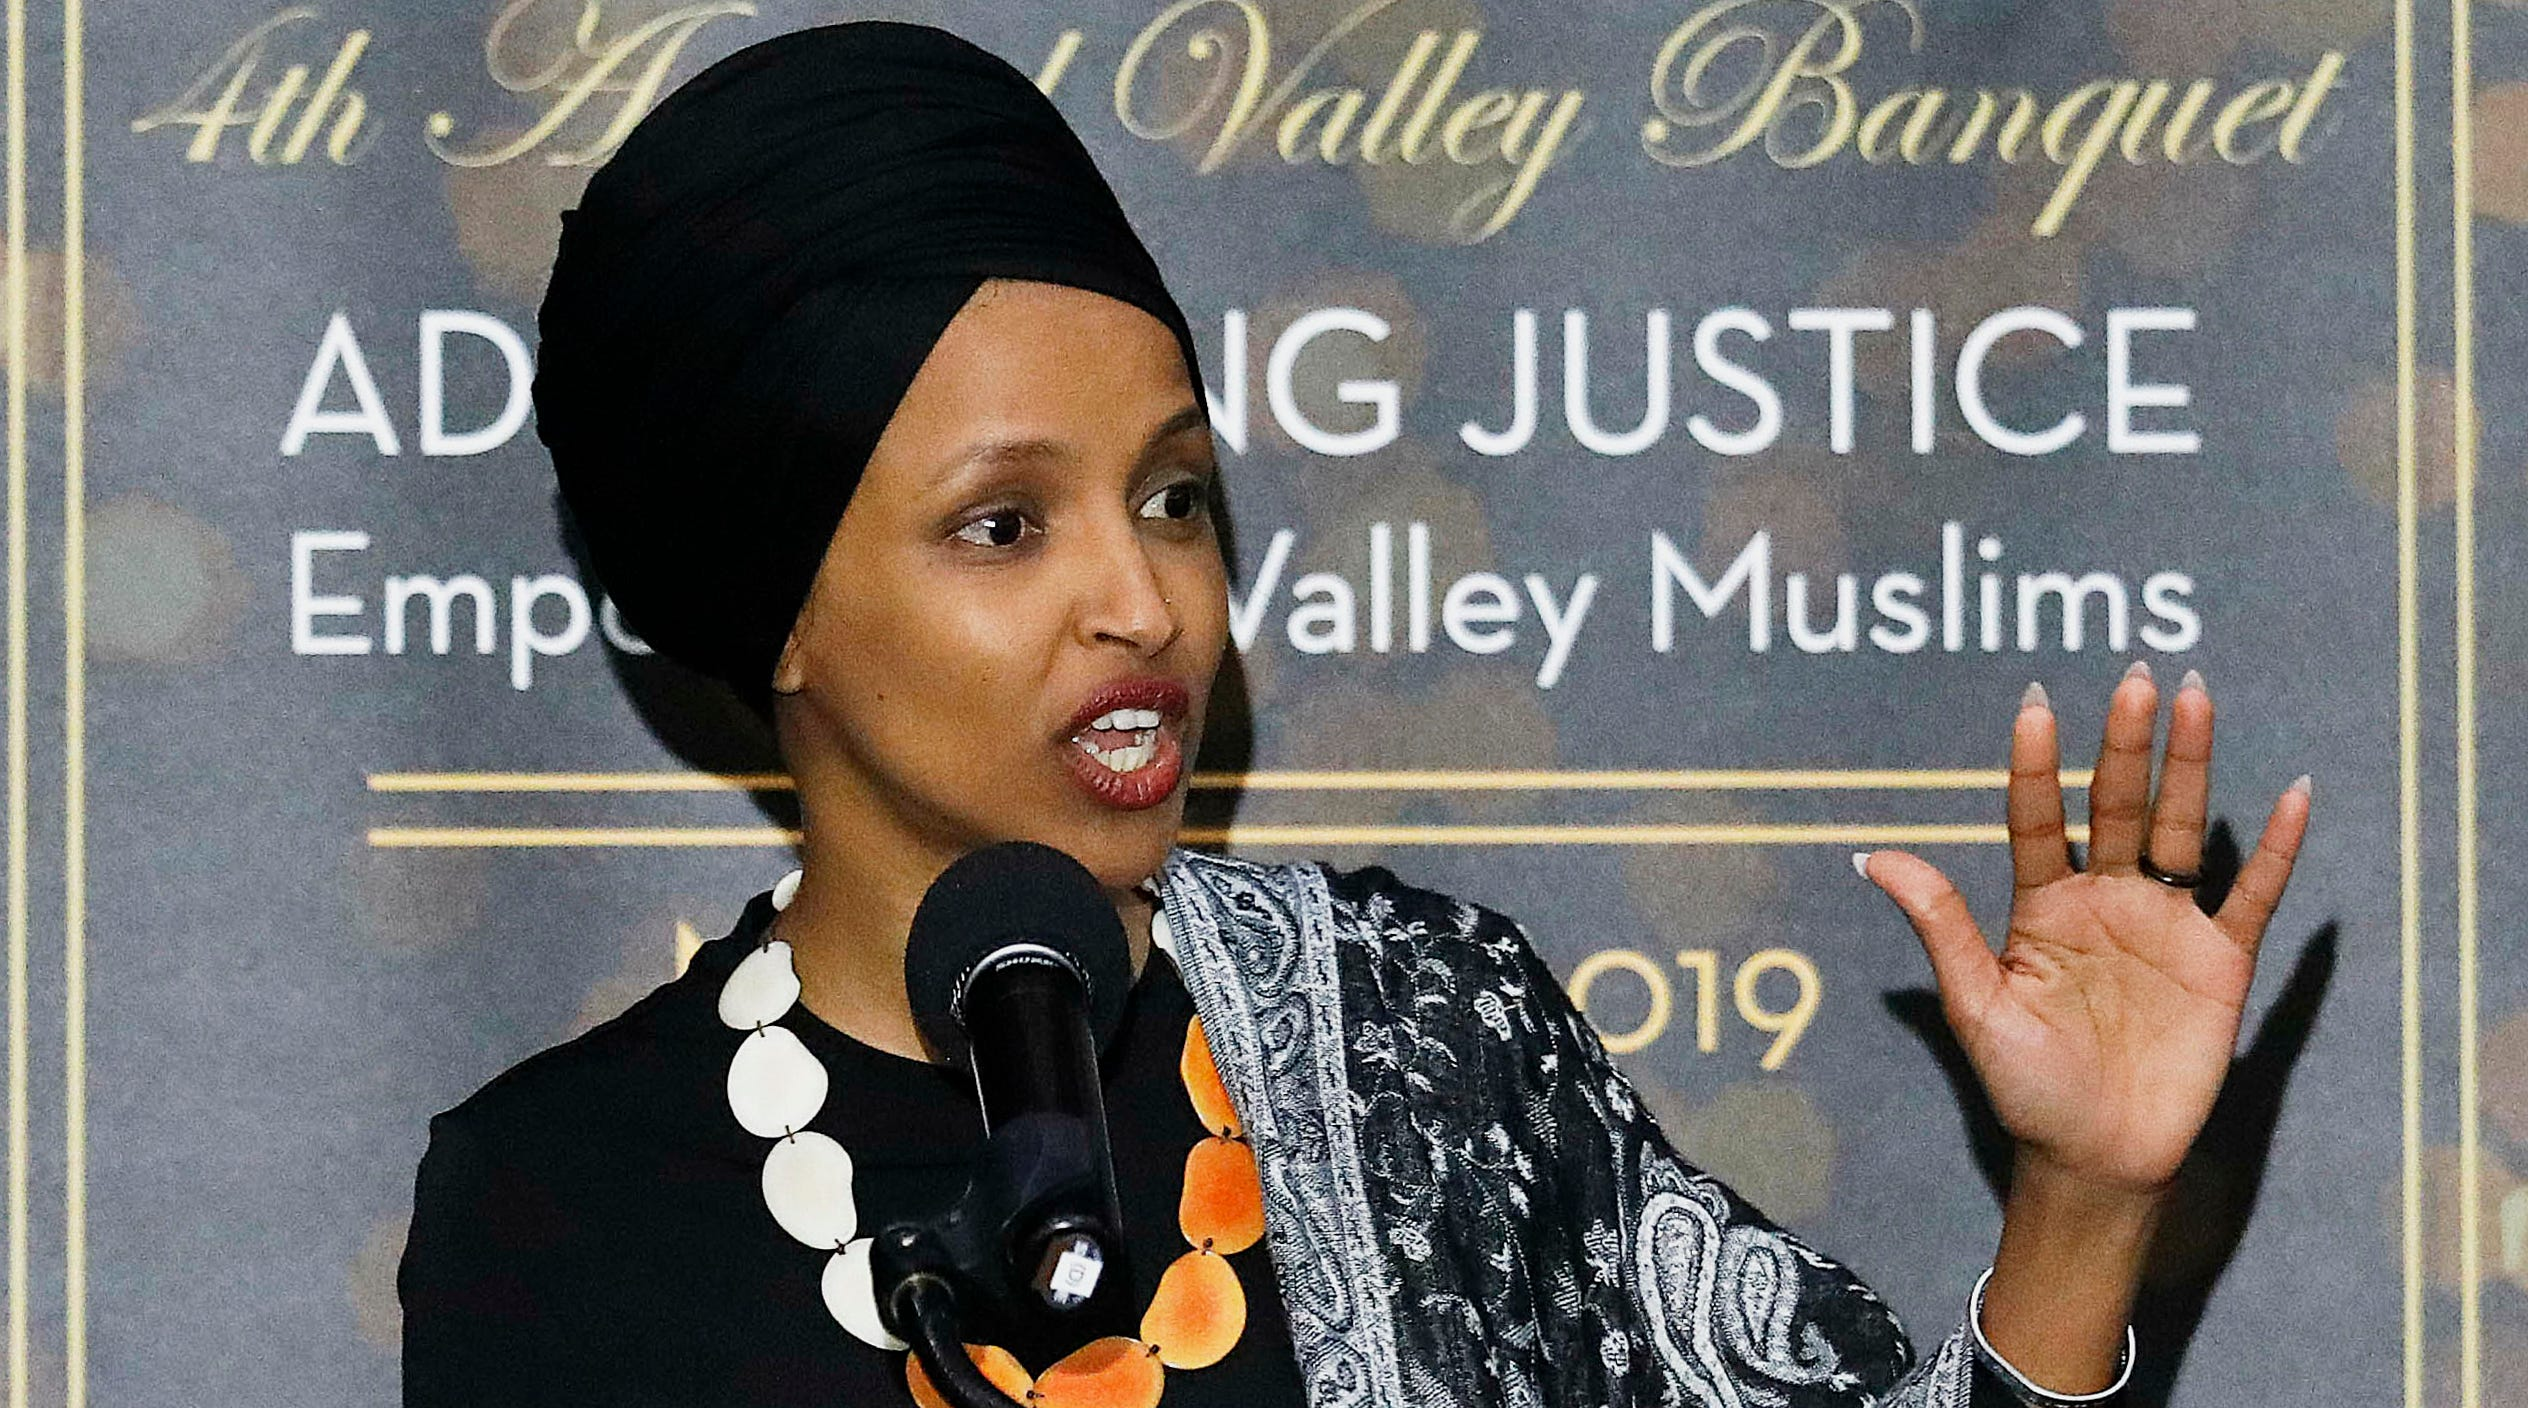 Rep. Ilhan Omar, D-Minn., speaks at a dinner banquet, part of a fundraising event for the Council of American-Islamic Relations of Greater Los Angeles at the Hilton hotel in Woodland Hills, California, March 23, 2019.